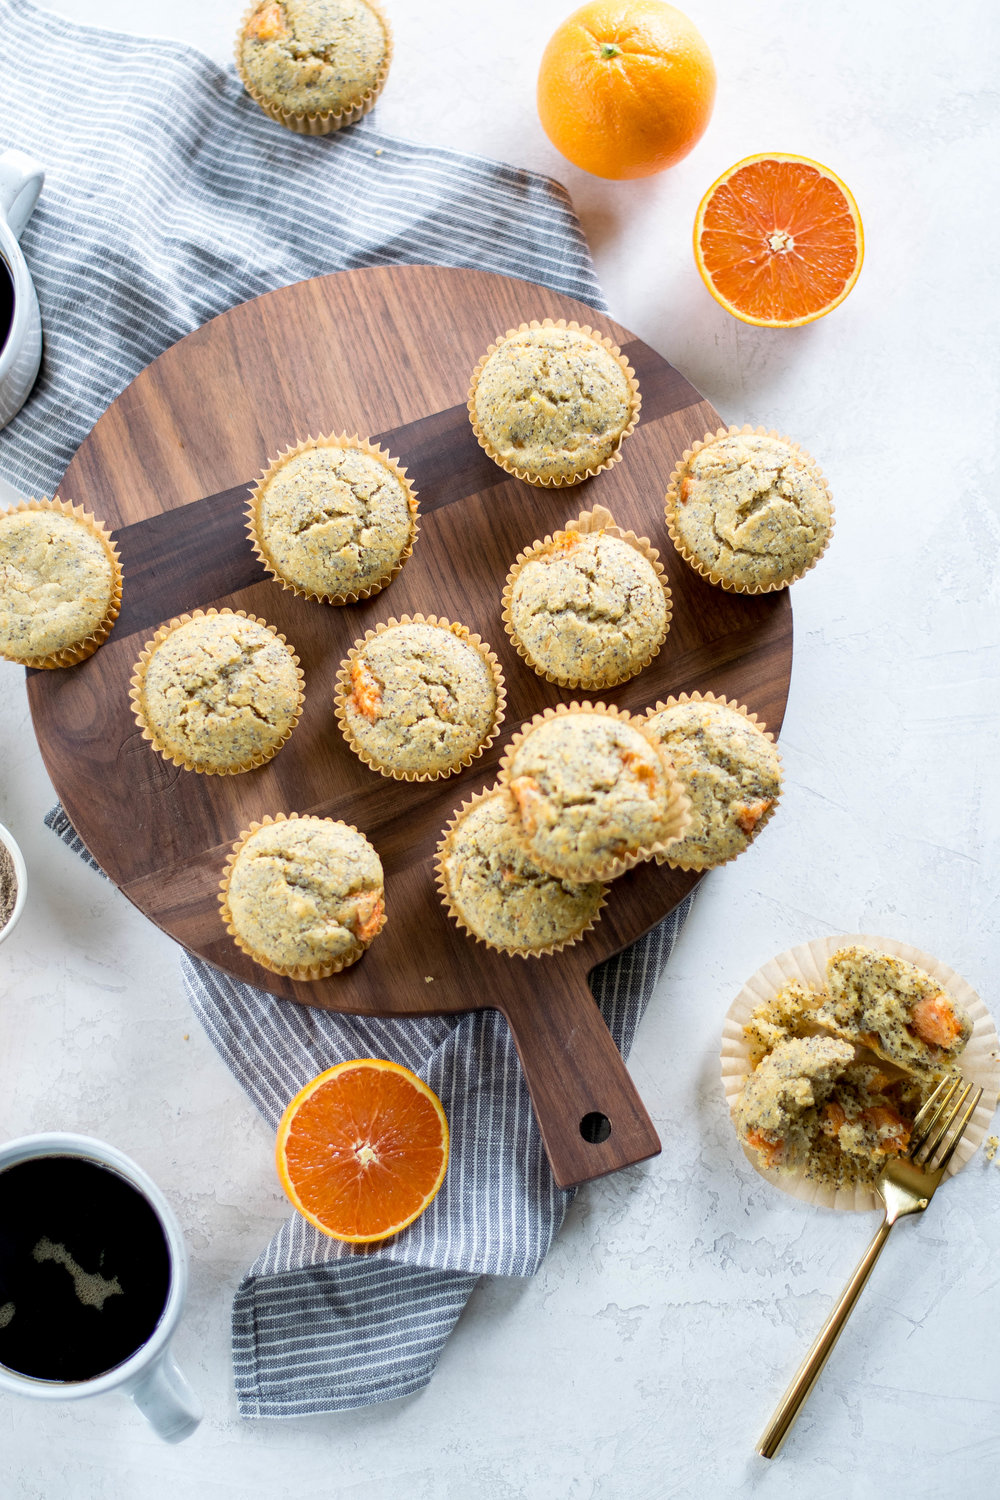 Cardamom + Cara Cara Orange Poppyseed Whole Wheat Muffins | All Purpose Flour Child